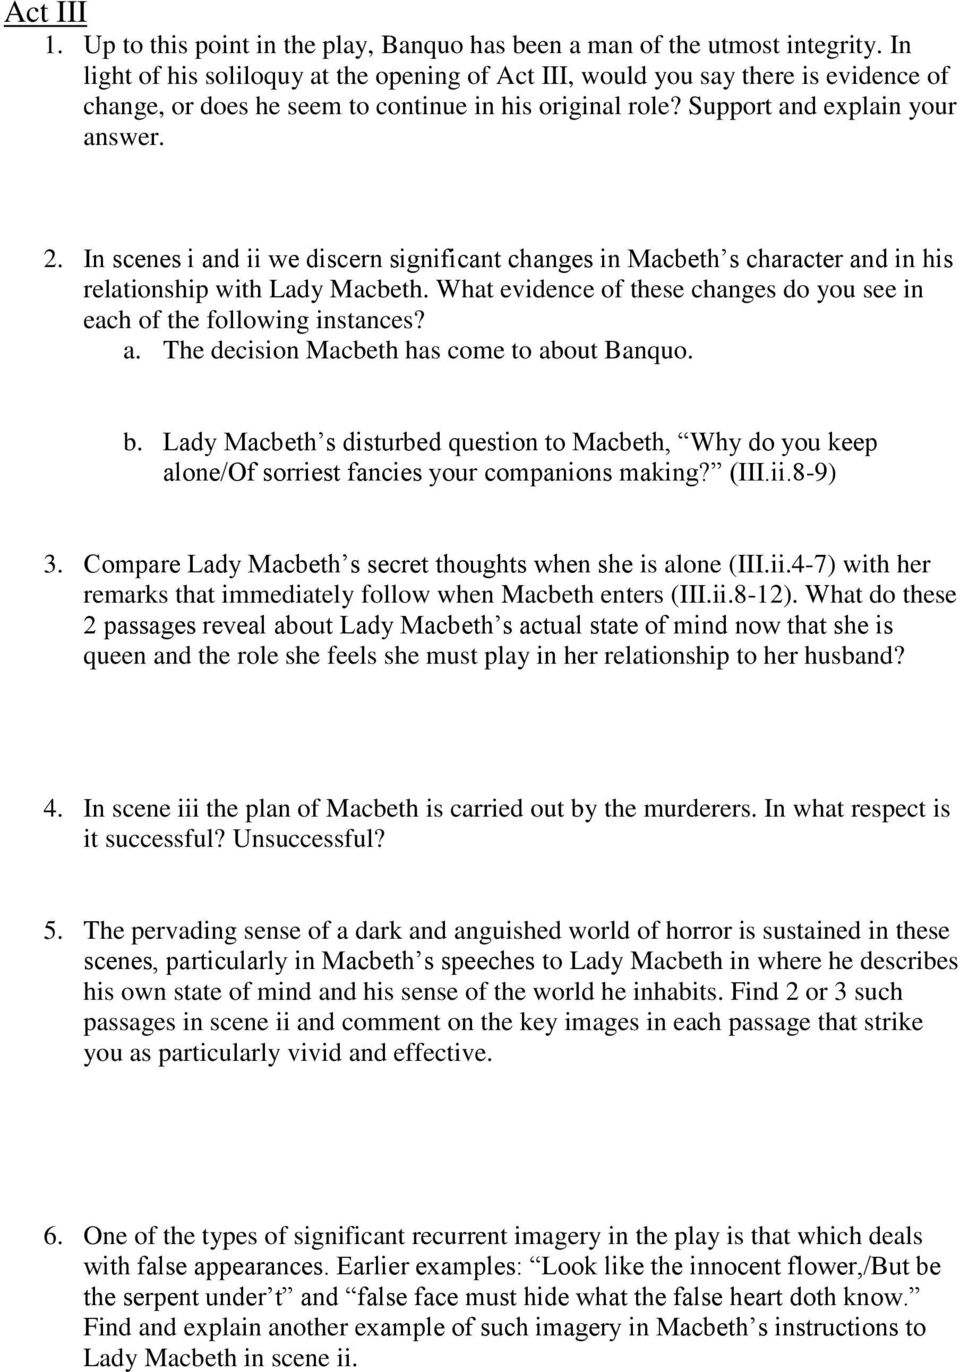 the role of lady macbeth